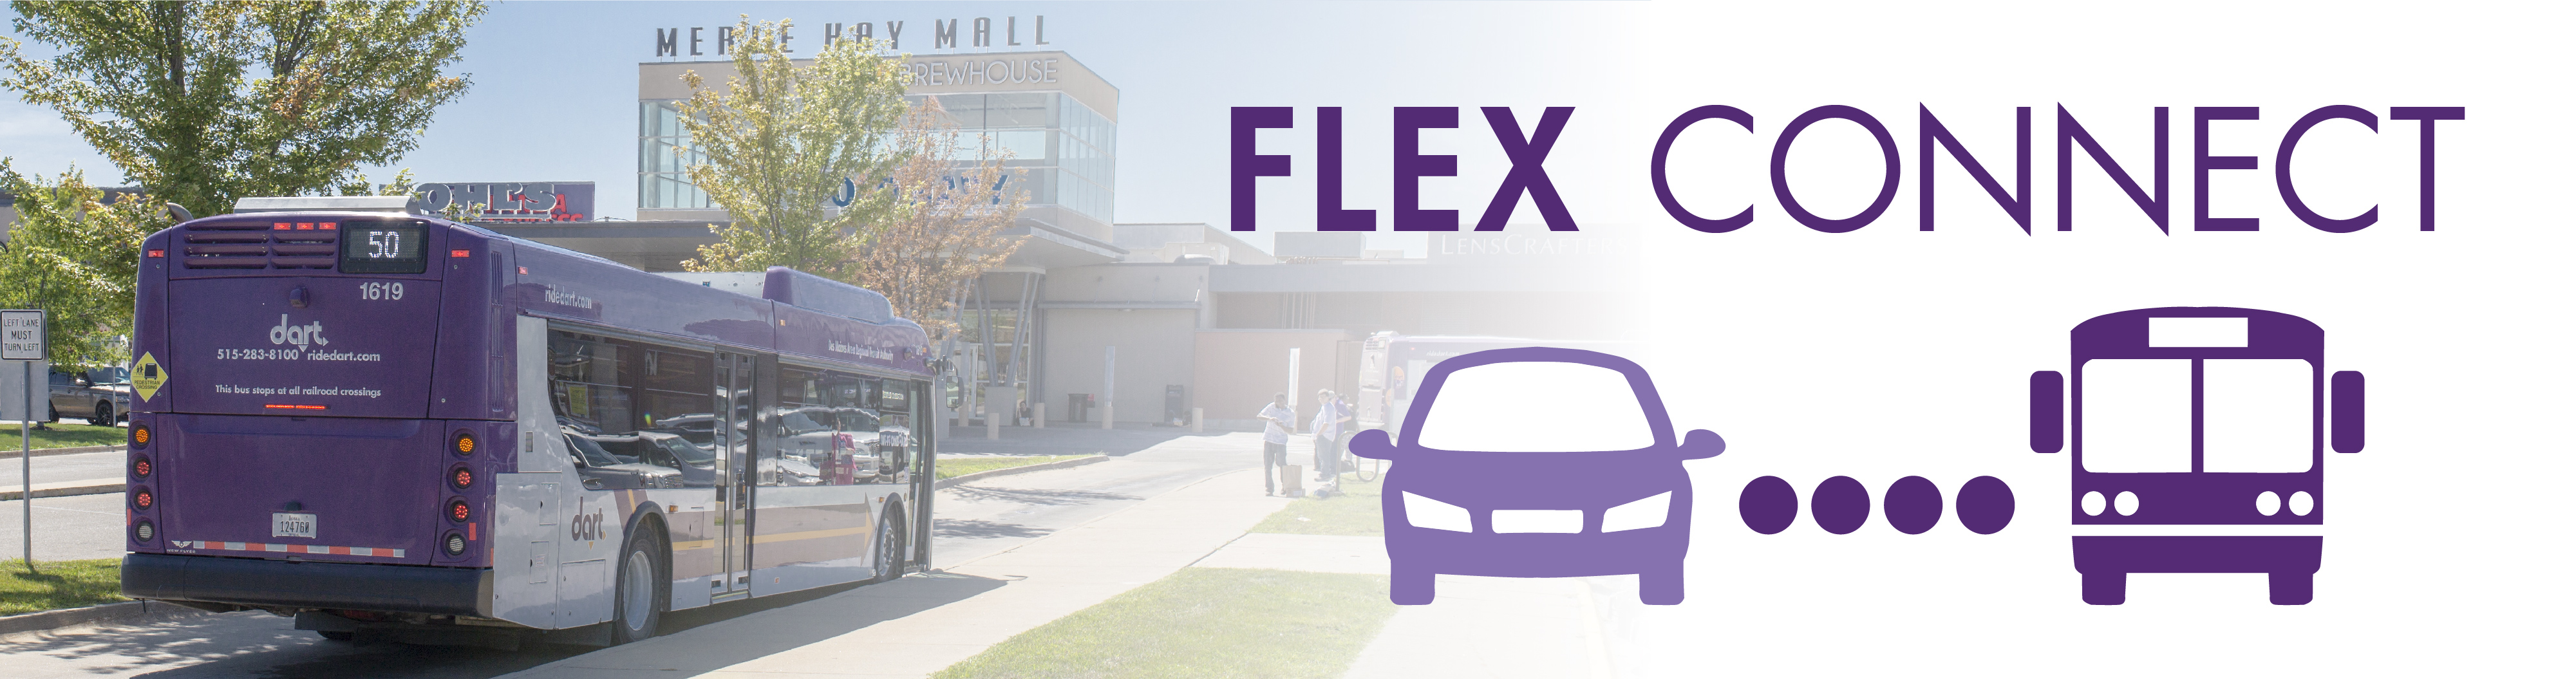 Flex Connect - An On-Demand Service